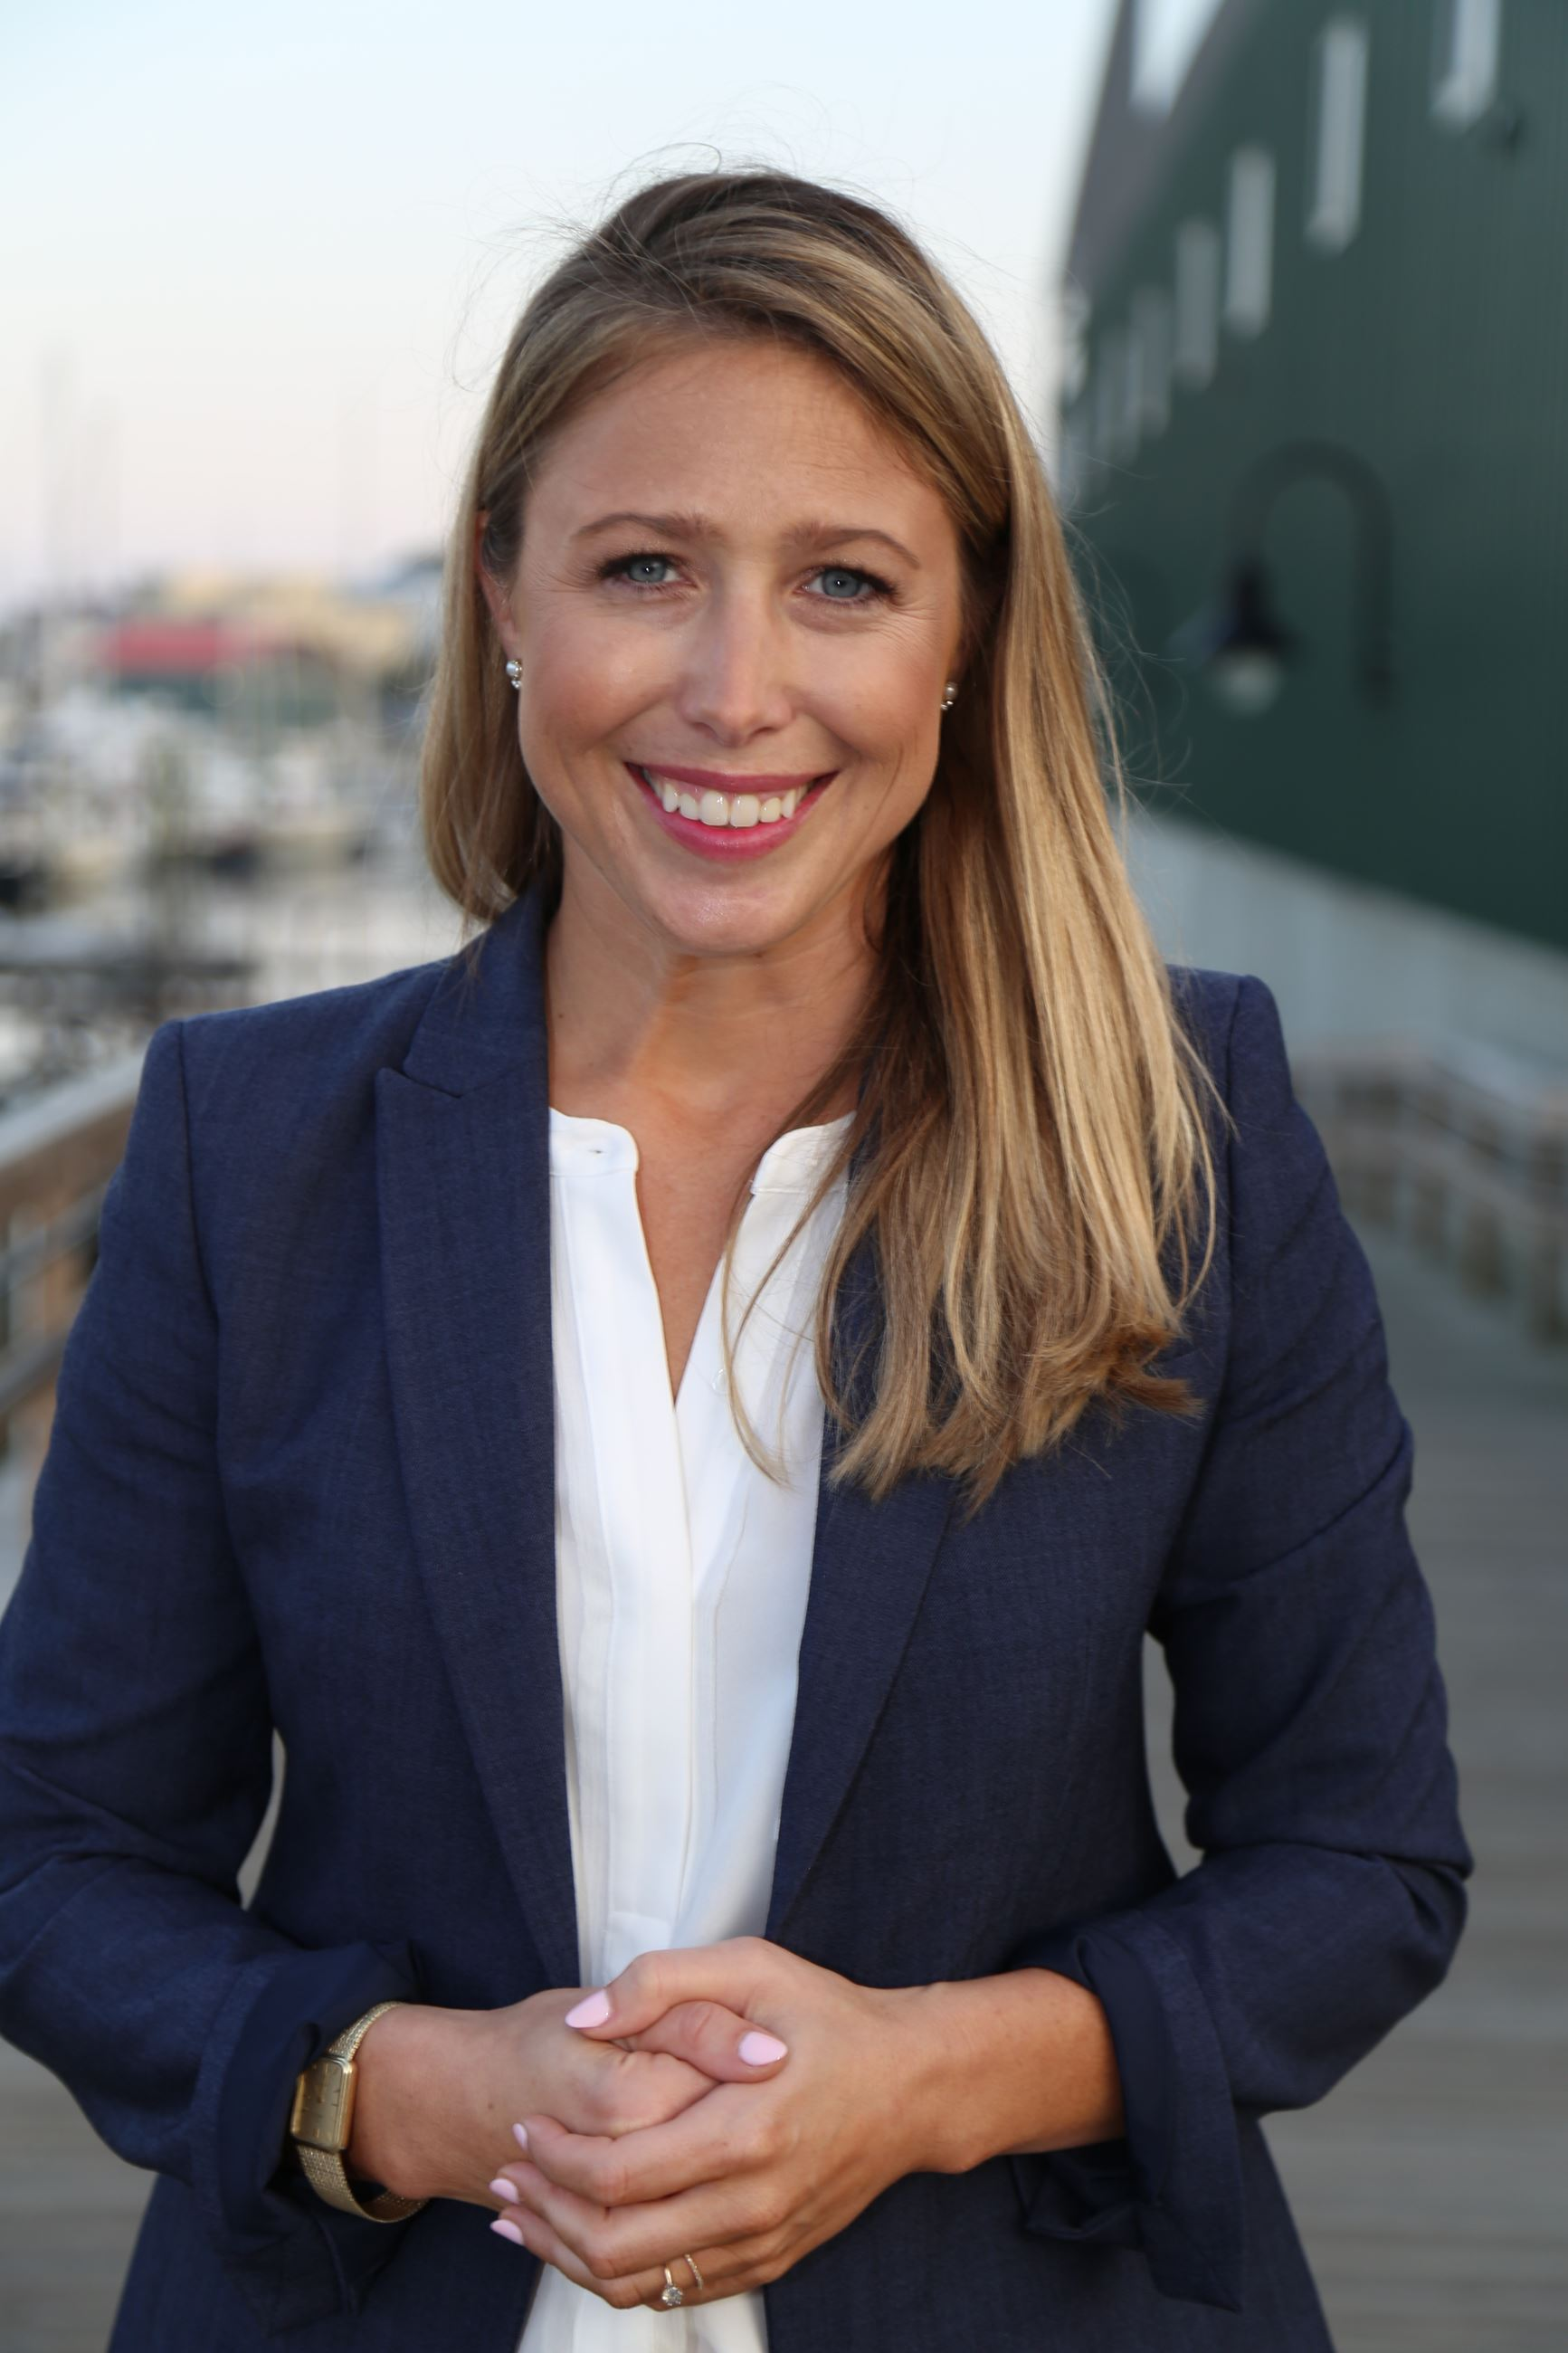 New City Manager Erin Herbig head shot, smiling at Belfast Harbor Walk.